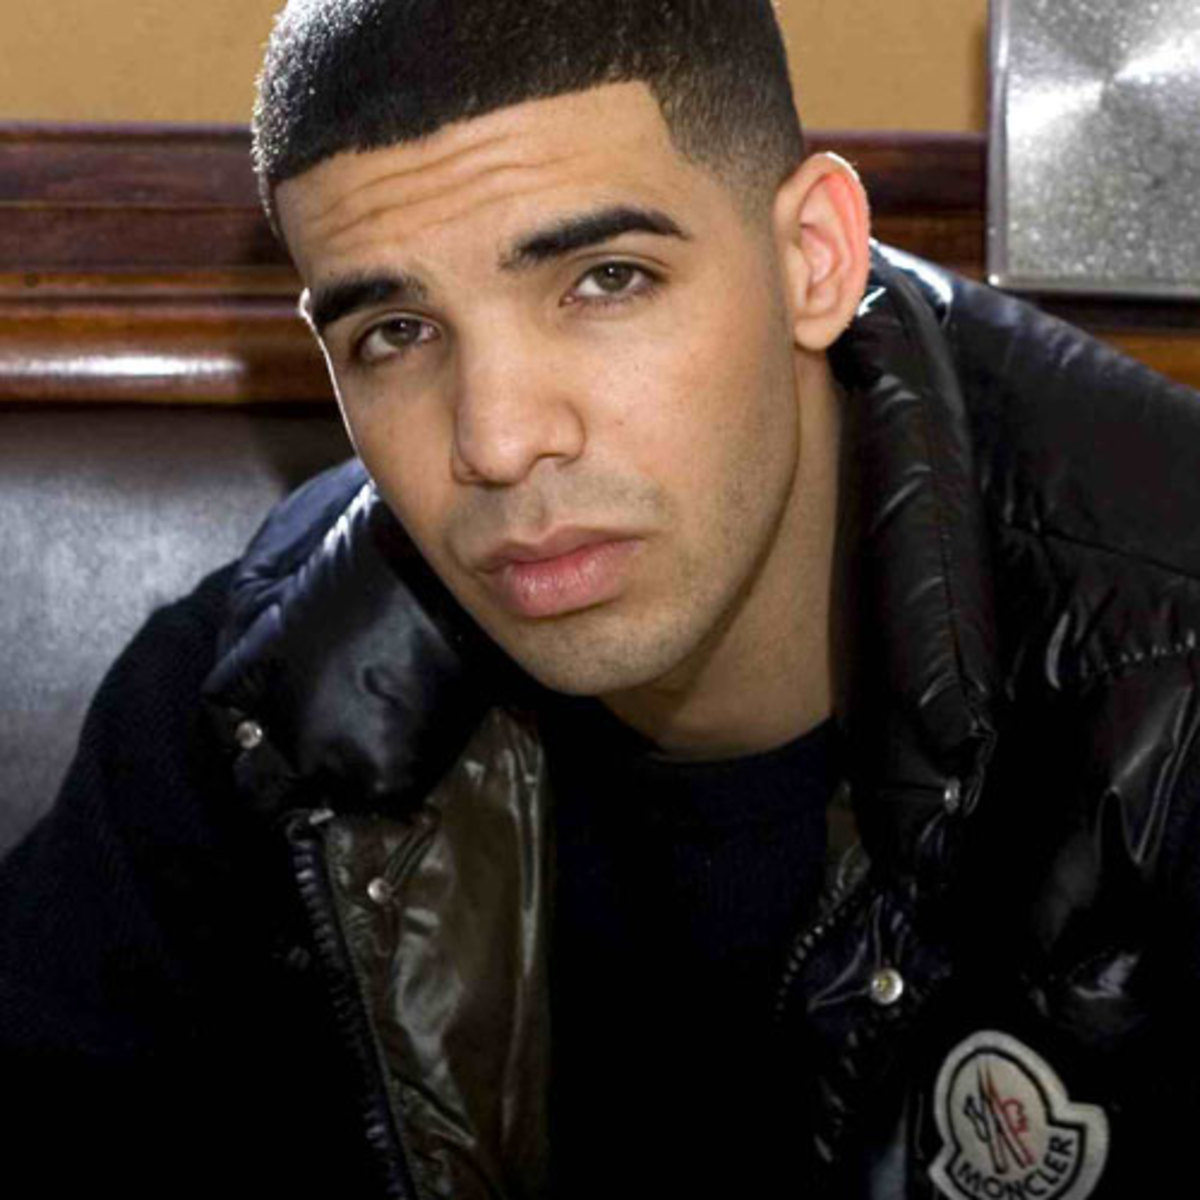 drake-2009-interview-no-diss.jpg